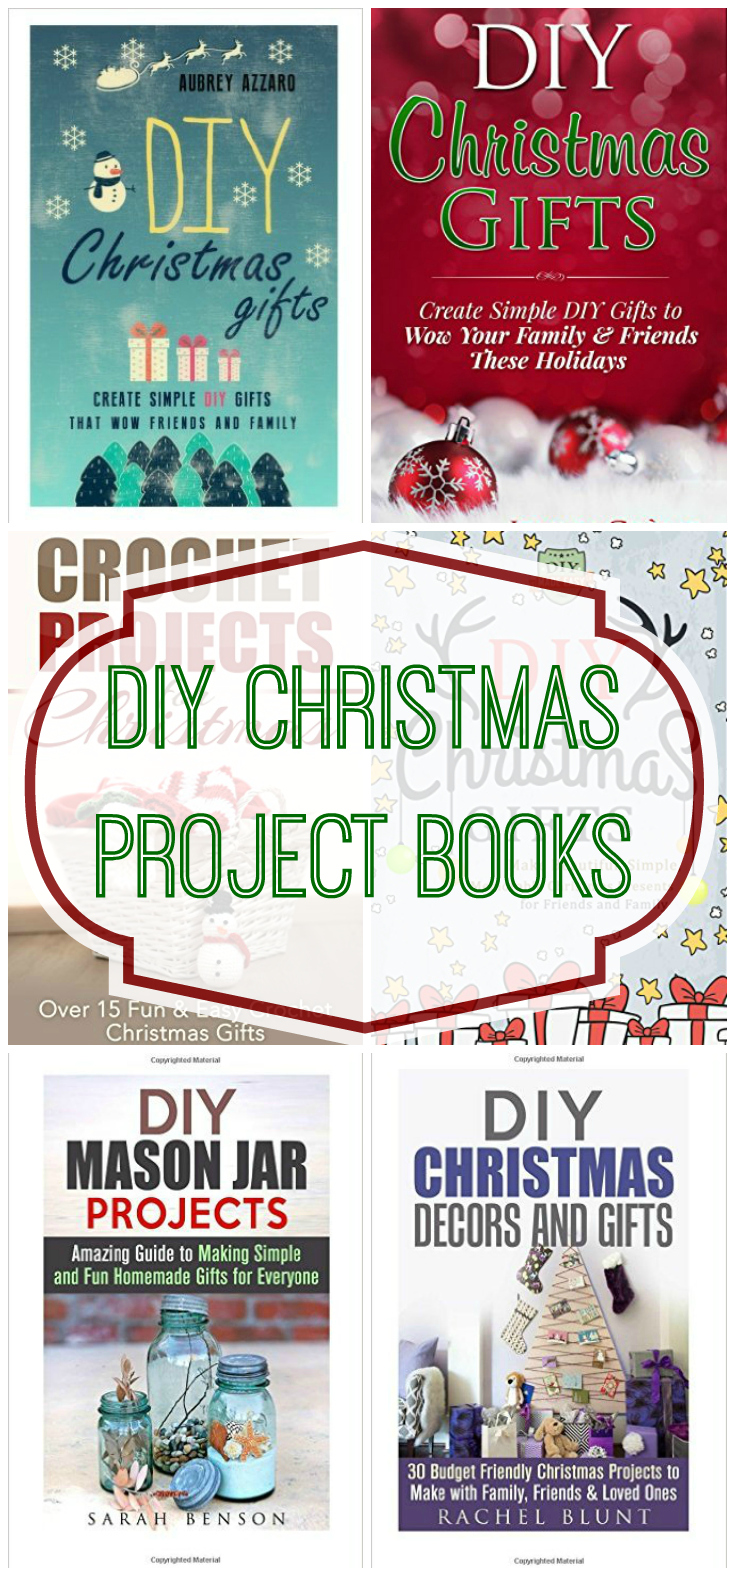 DIY Christmas Project Books